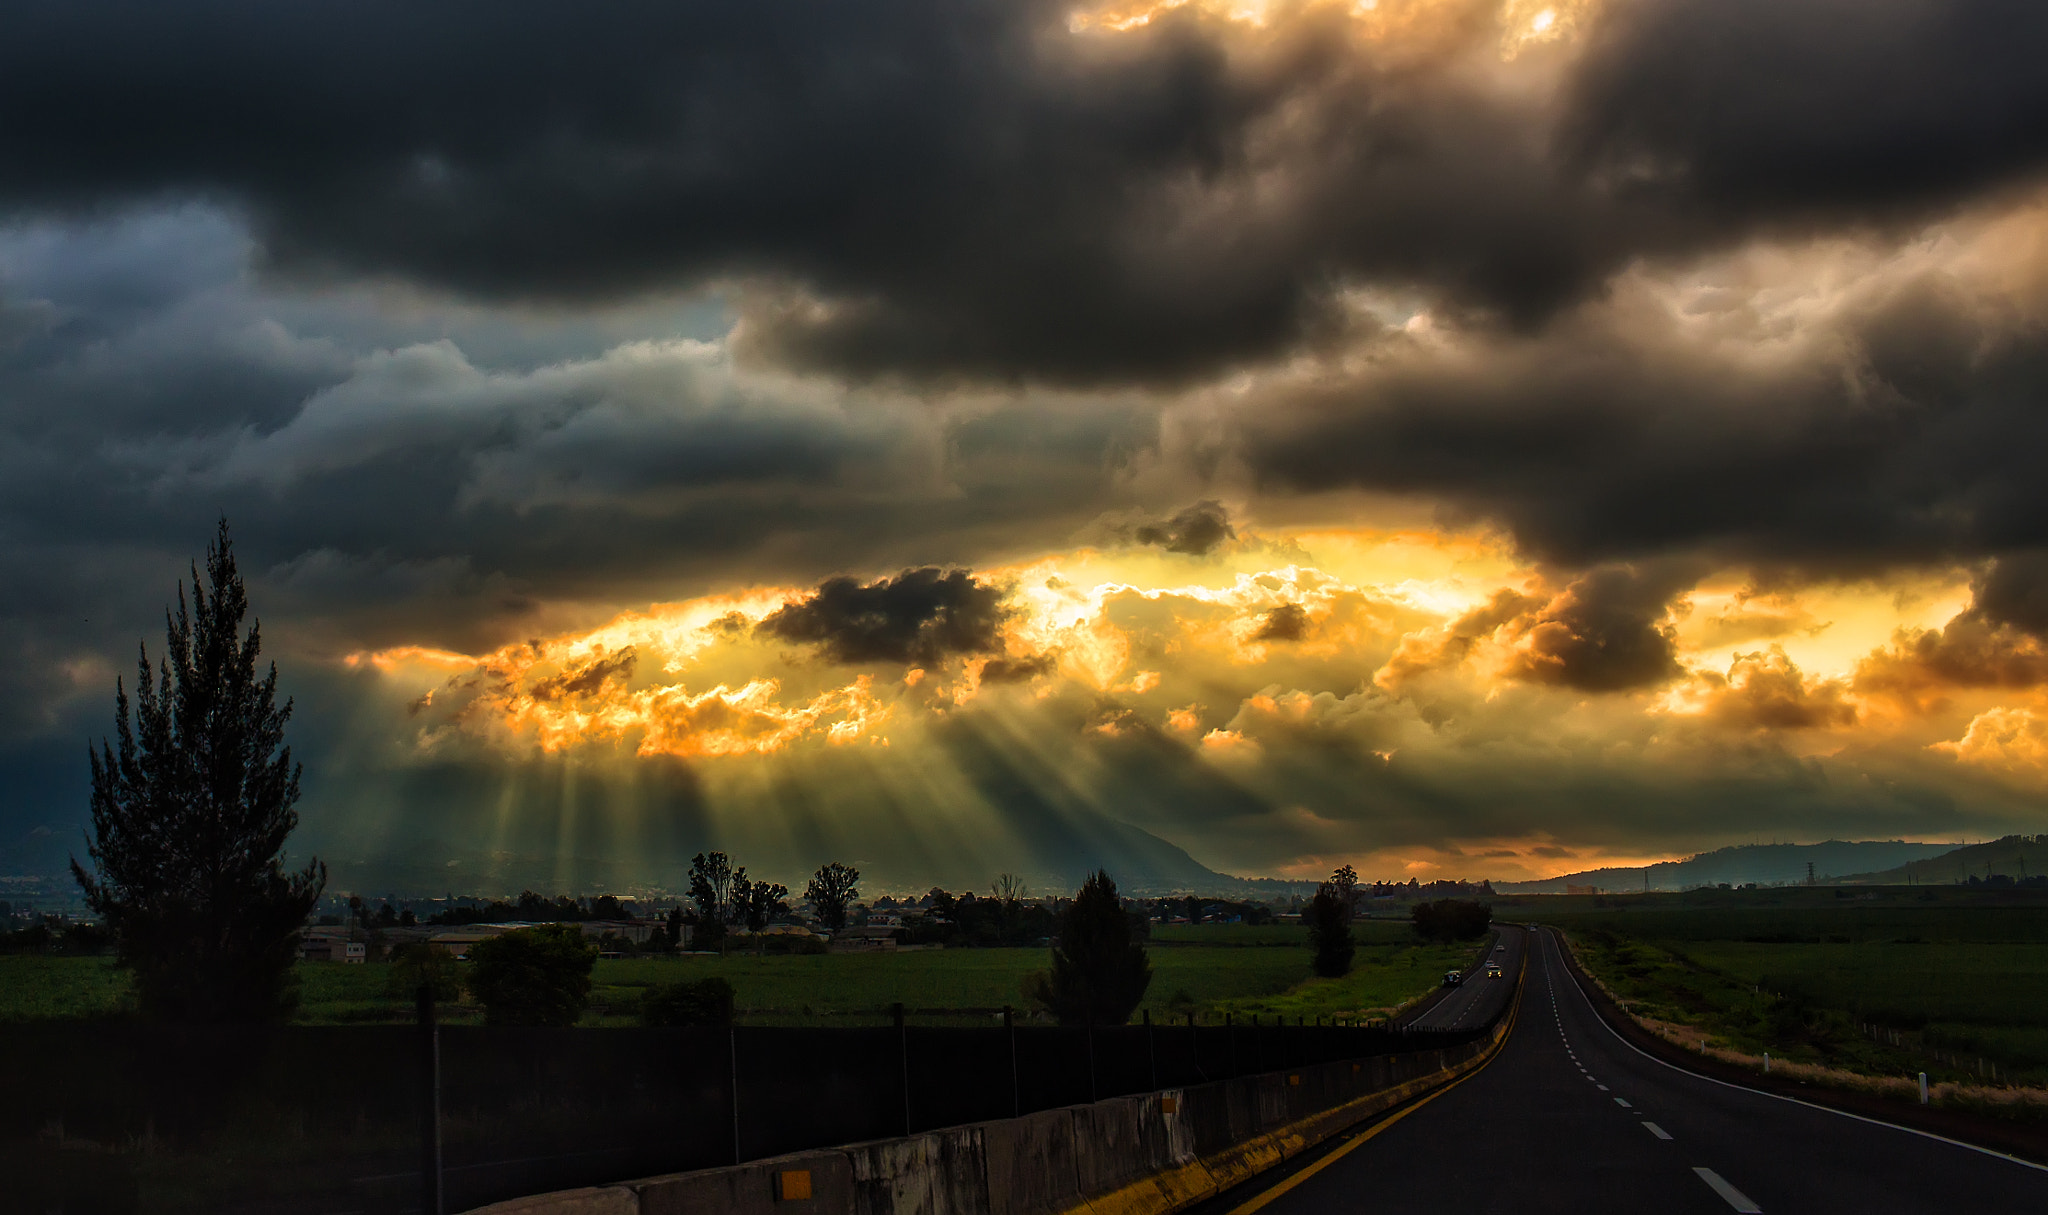 Photograph And God Came Down To Meet Me On The Road by Daniel Stoychev on 500px